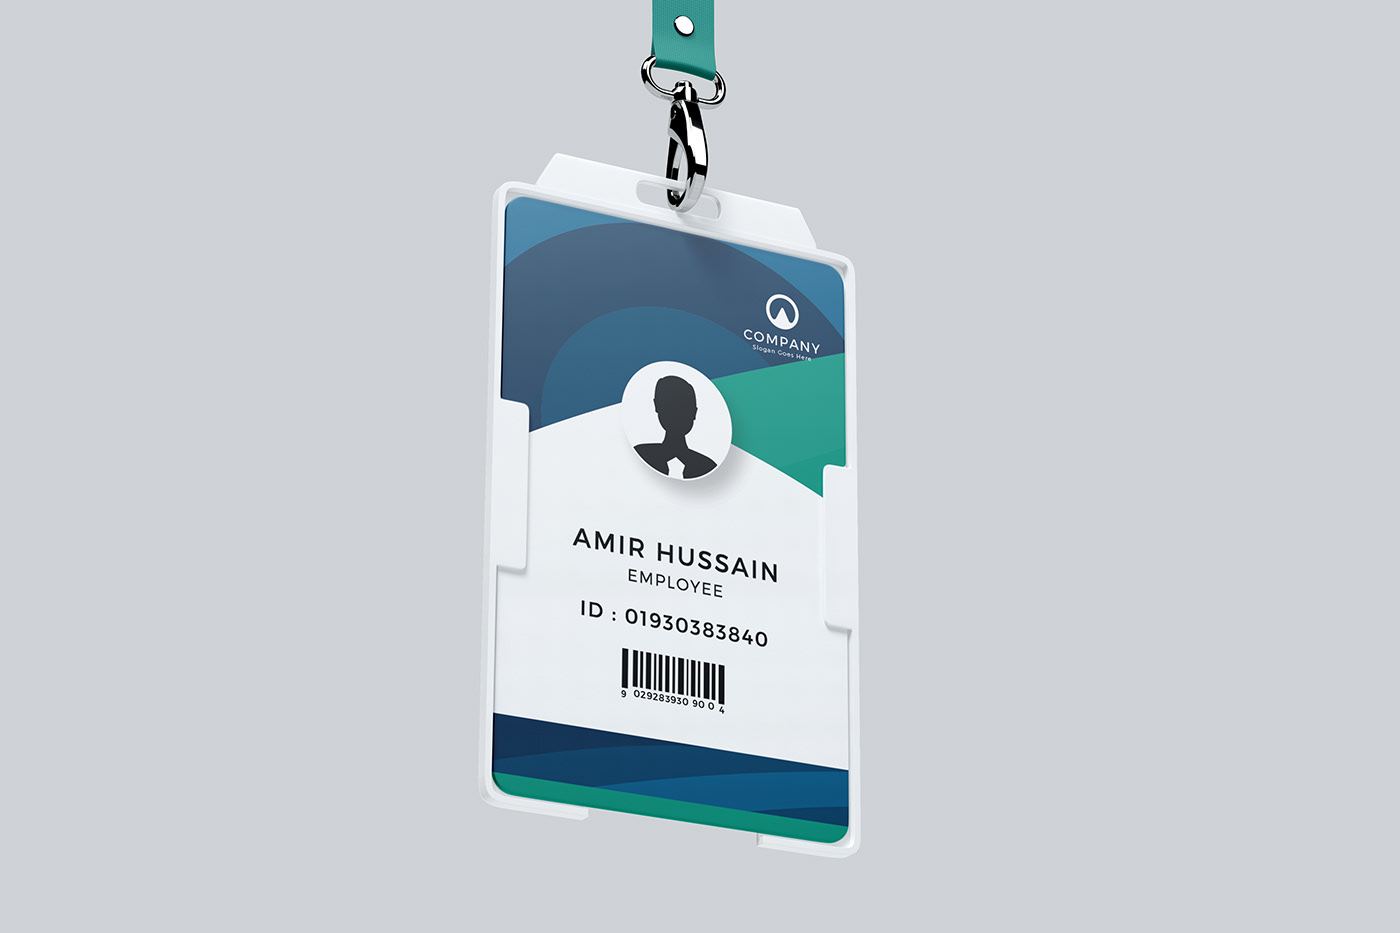 Employee Identification Card Template Free Download from mir-s3-cdn-cf.behance.net